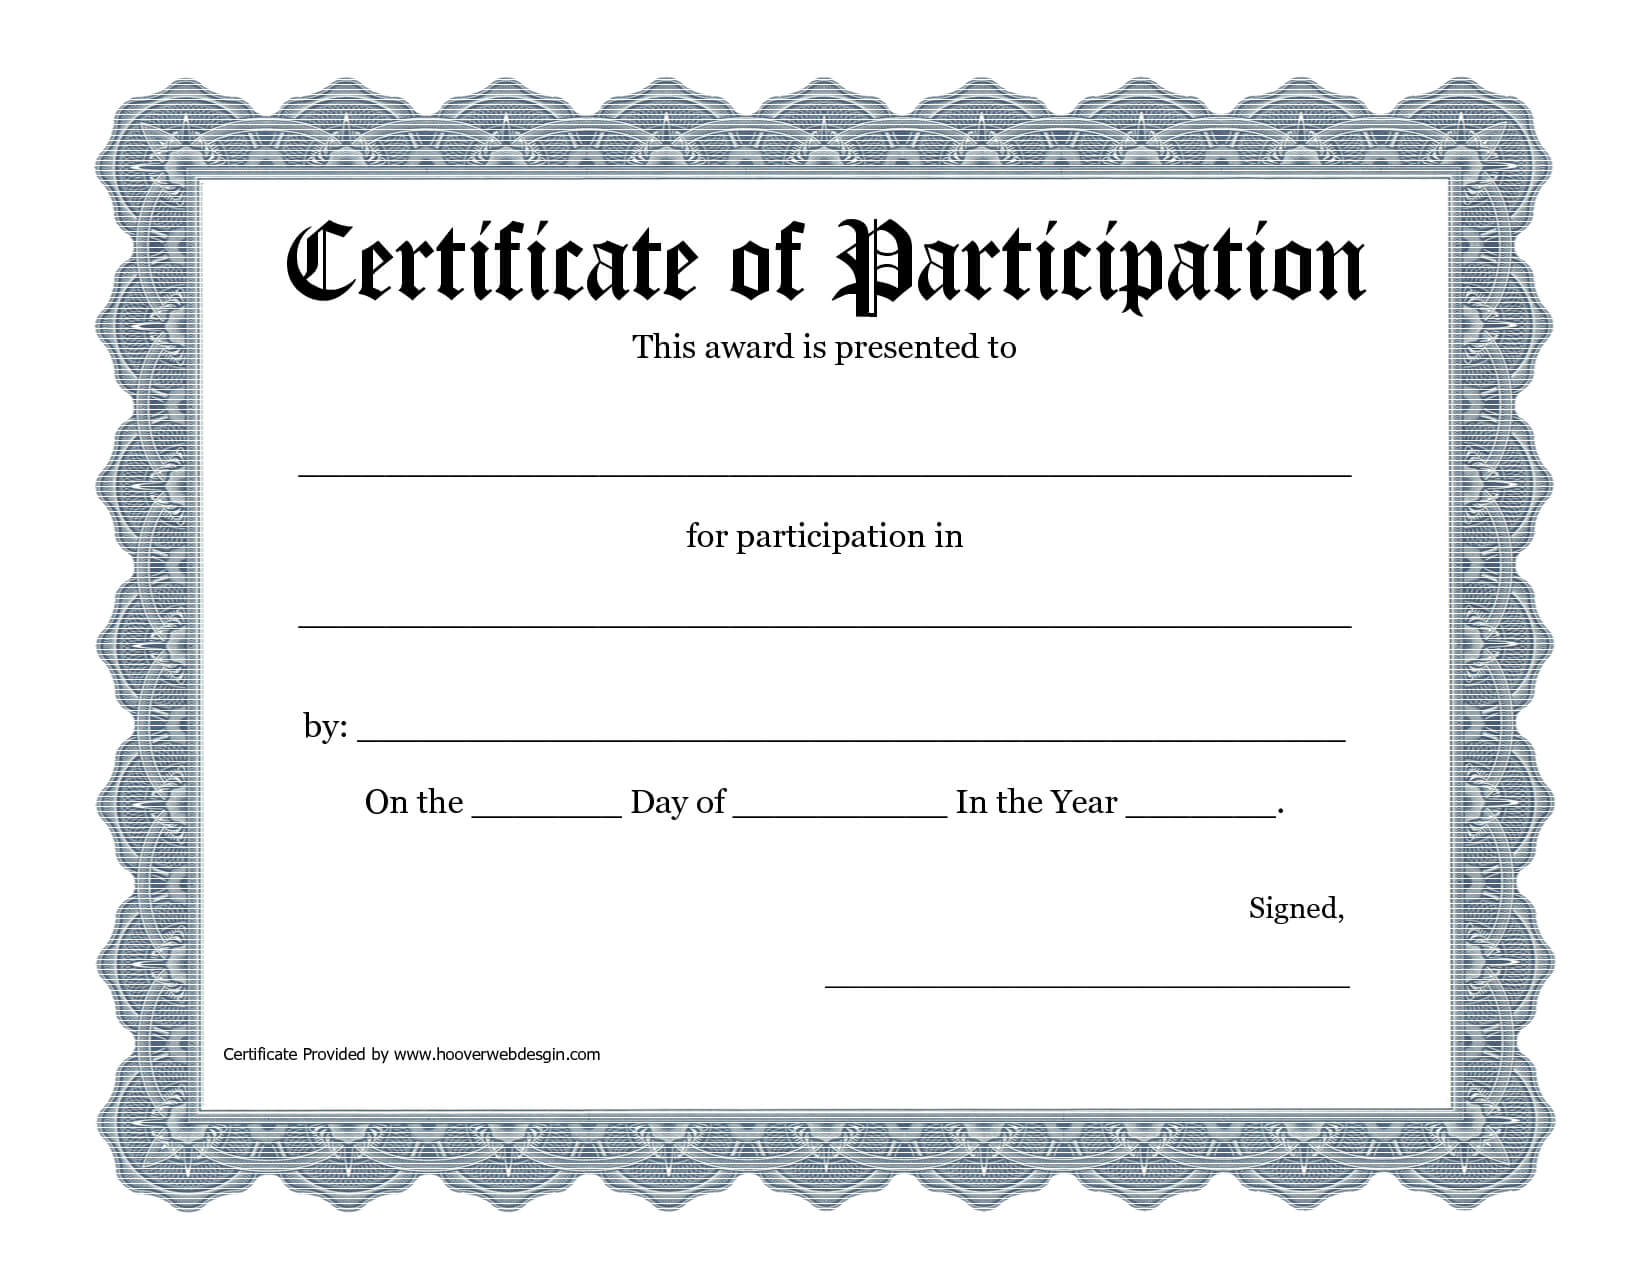 Free Printable Award Certificate Template - Bing Images Regarding Sample Certificate Of Participation Template